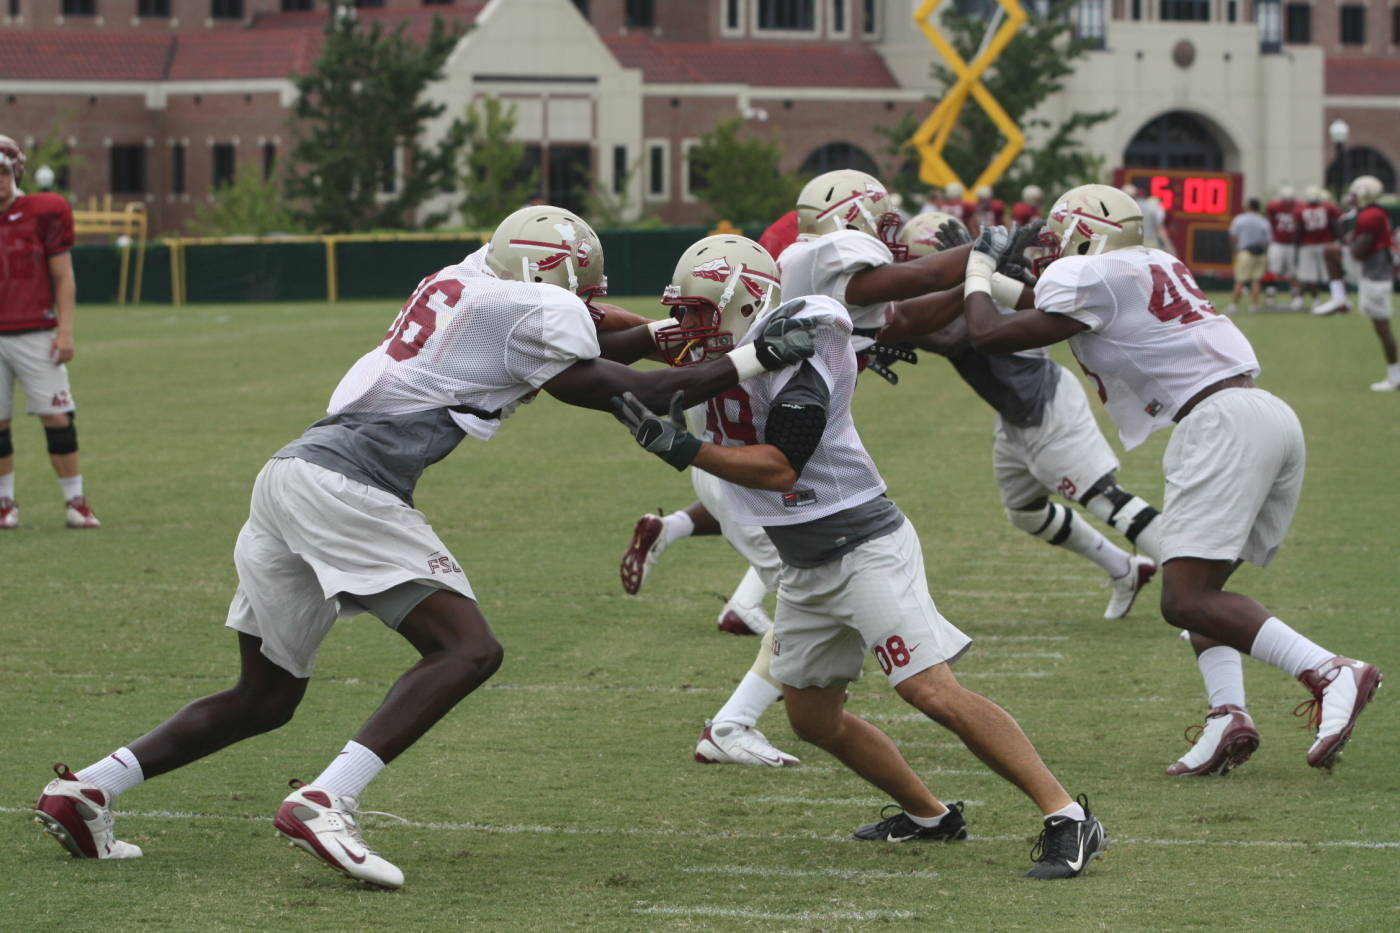 Wednesday, August 26th football practice#$%^Courtesy:  Seminoles.com